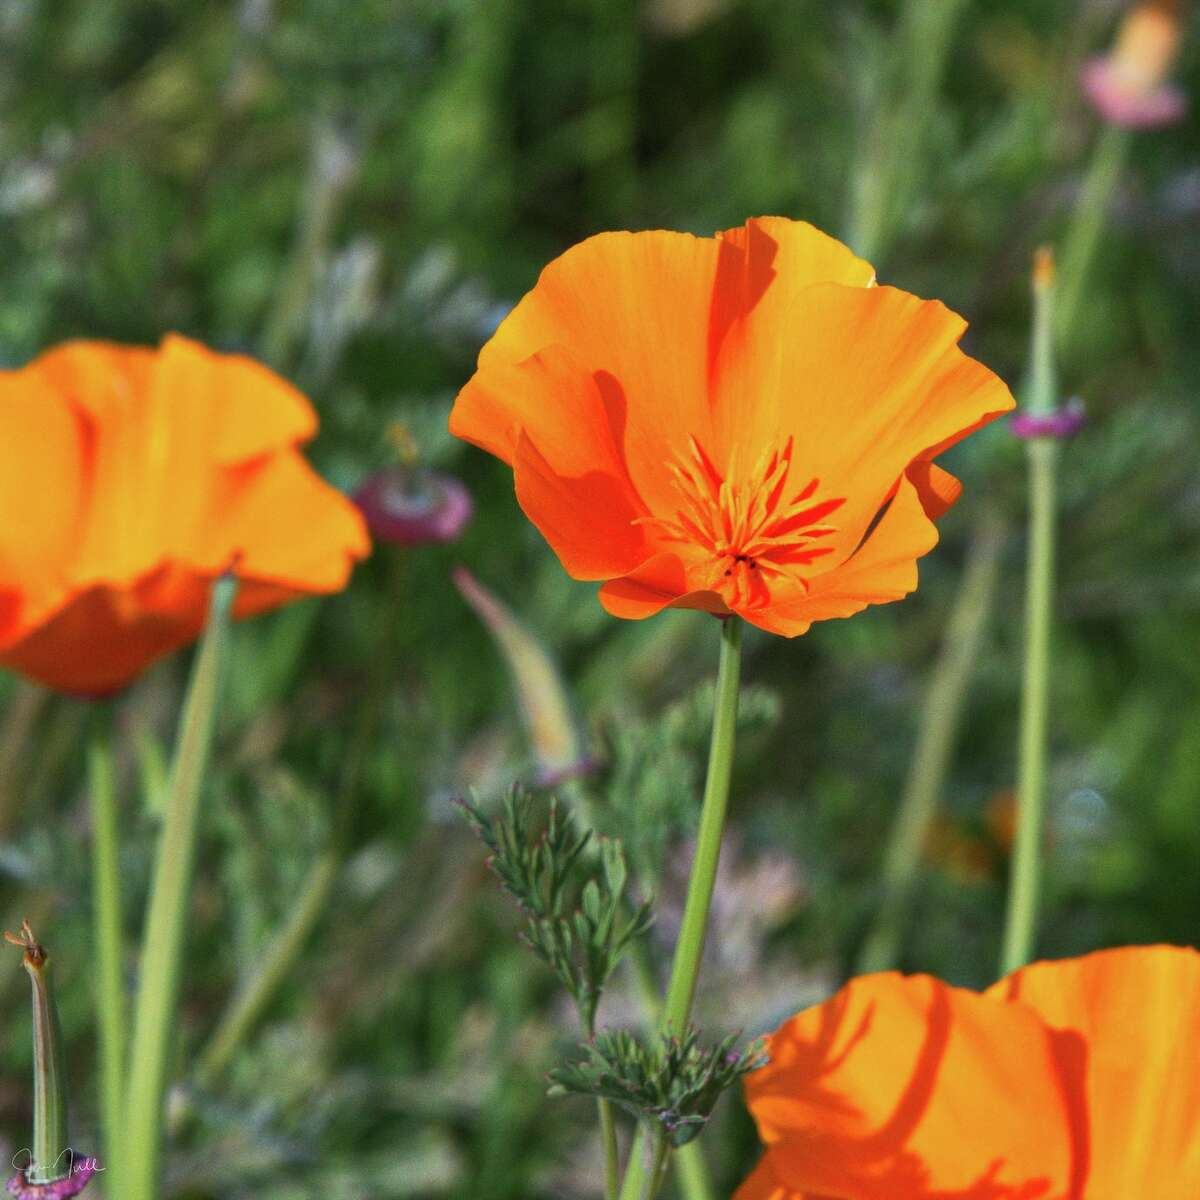 """""""First poppies of the season, an indicator of the uncharacteristically warm, and unfortunately dry, California weather,"""" meteorologist Jan Null of Golden Gate Weather Services wrote on Twitter when he shared this photo on Feb. 2."""